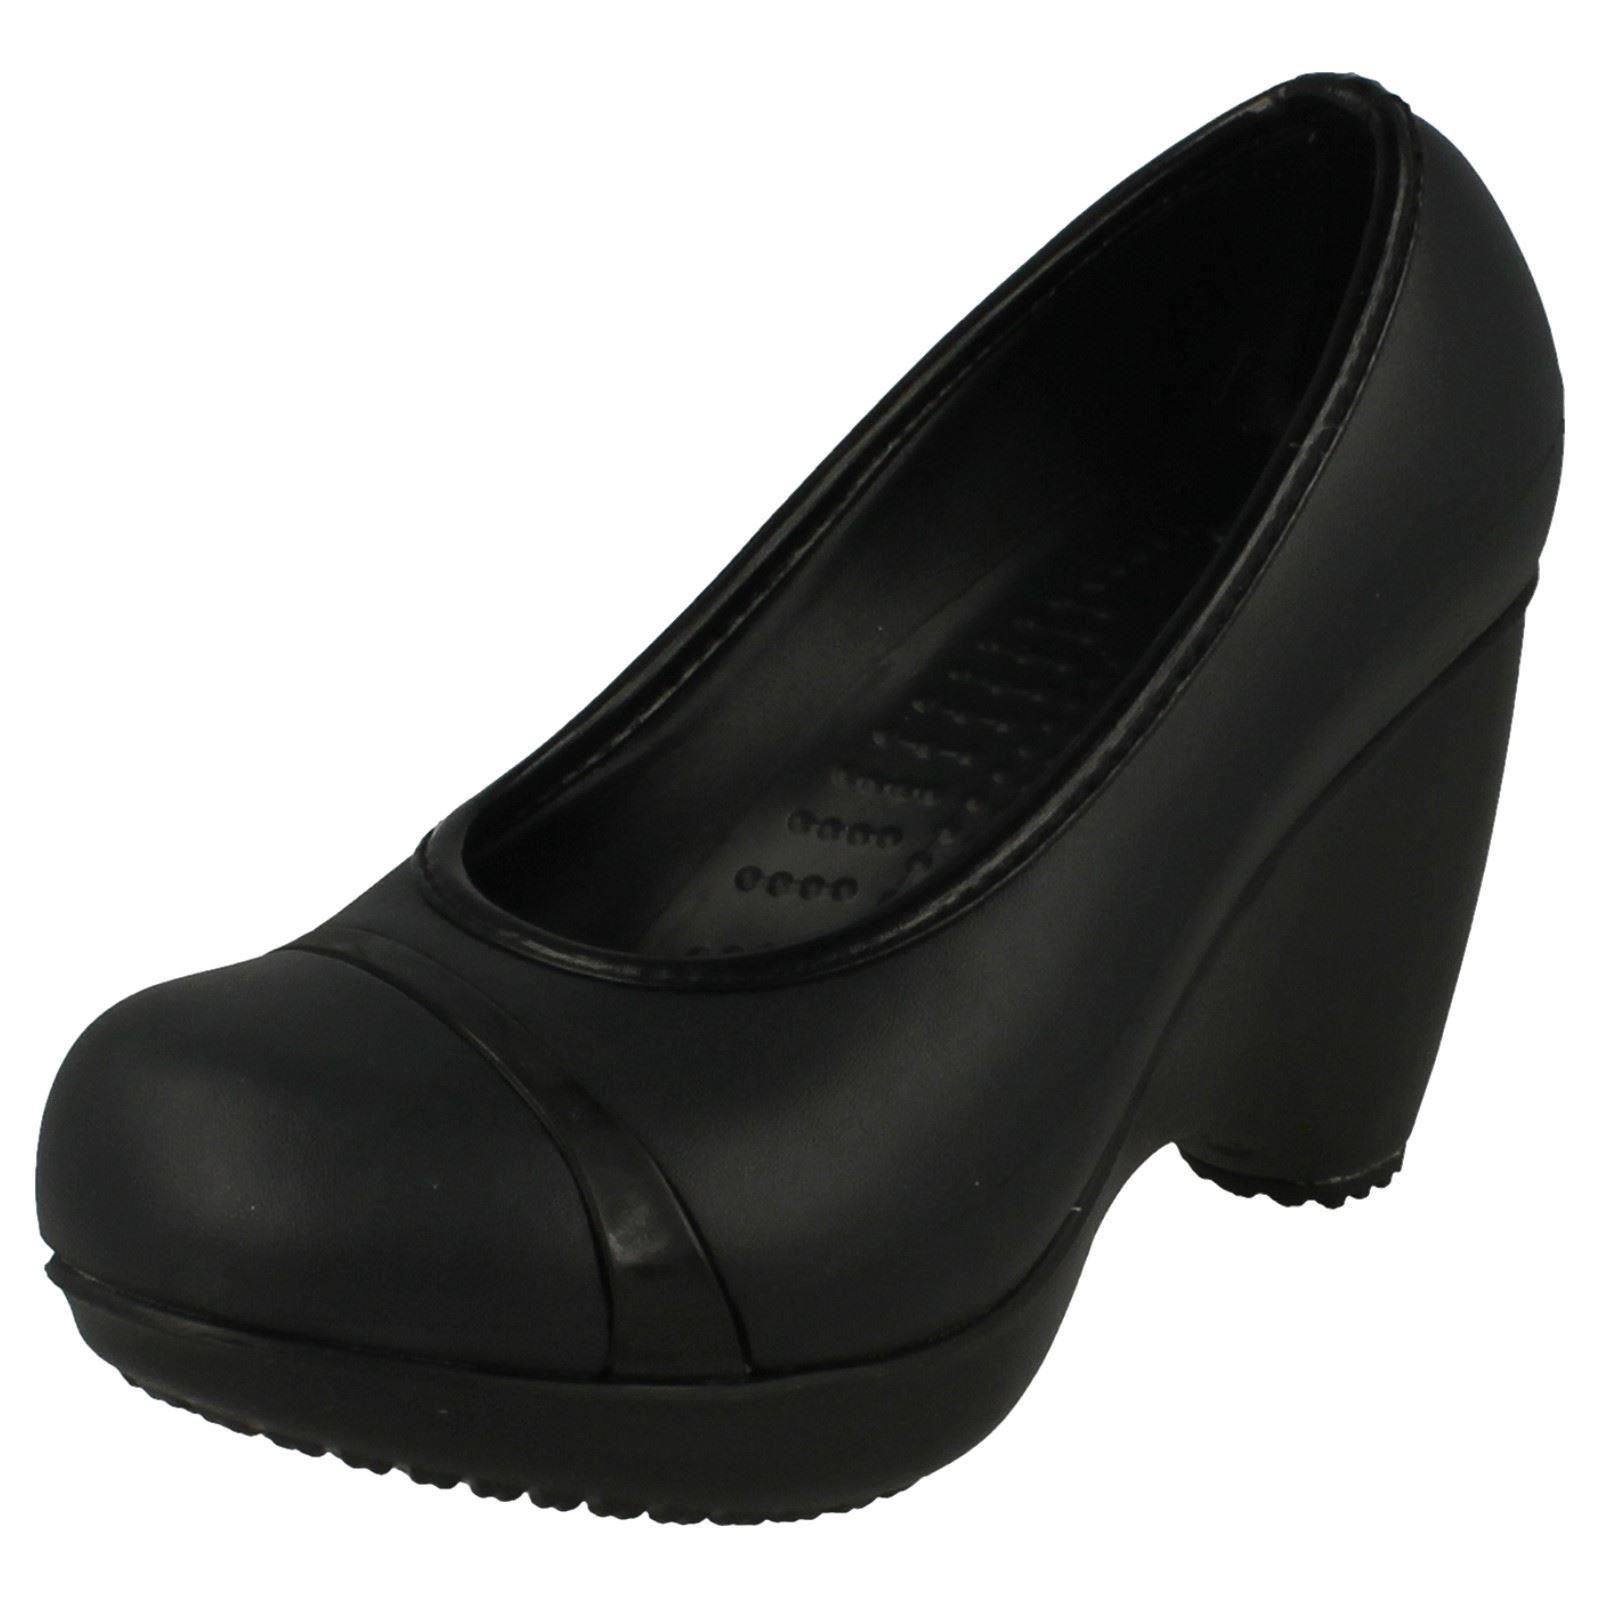 Croc Slip On Shoes For Women